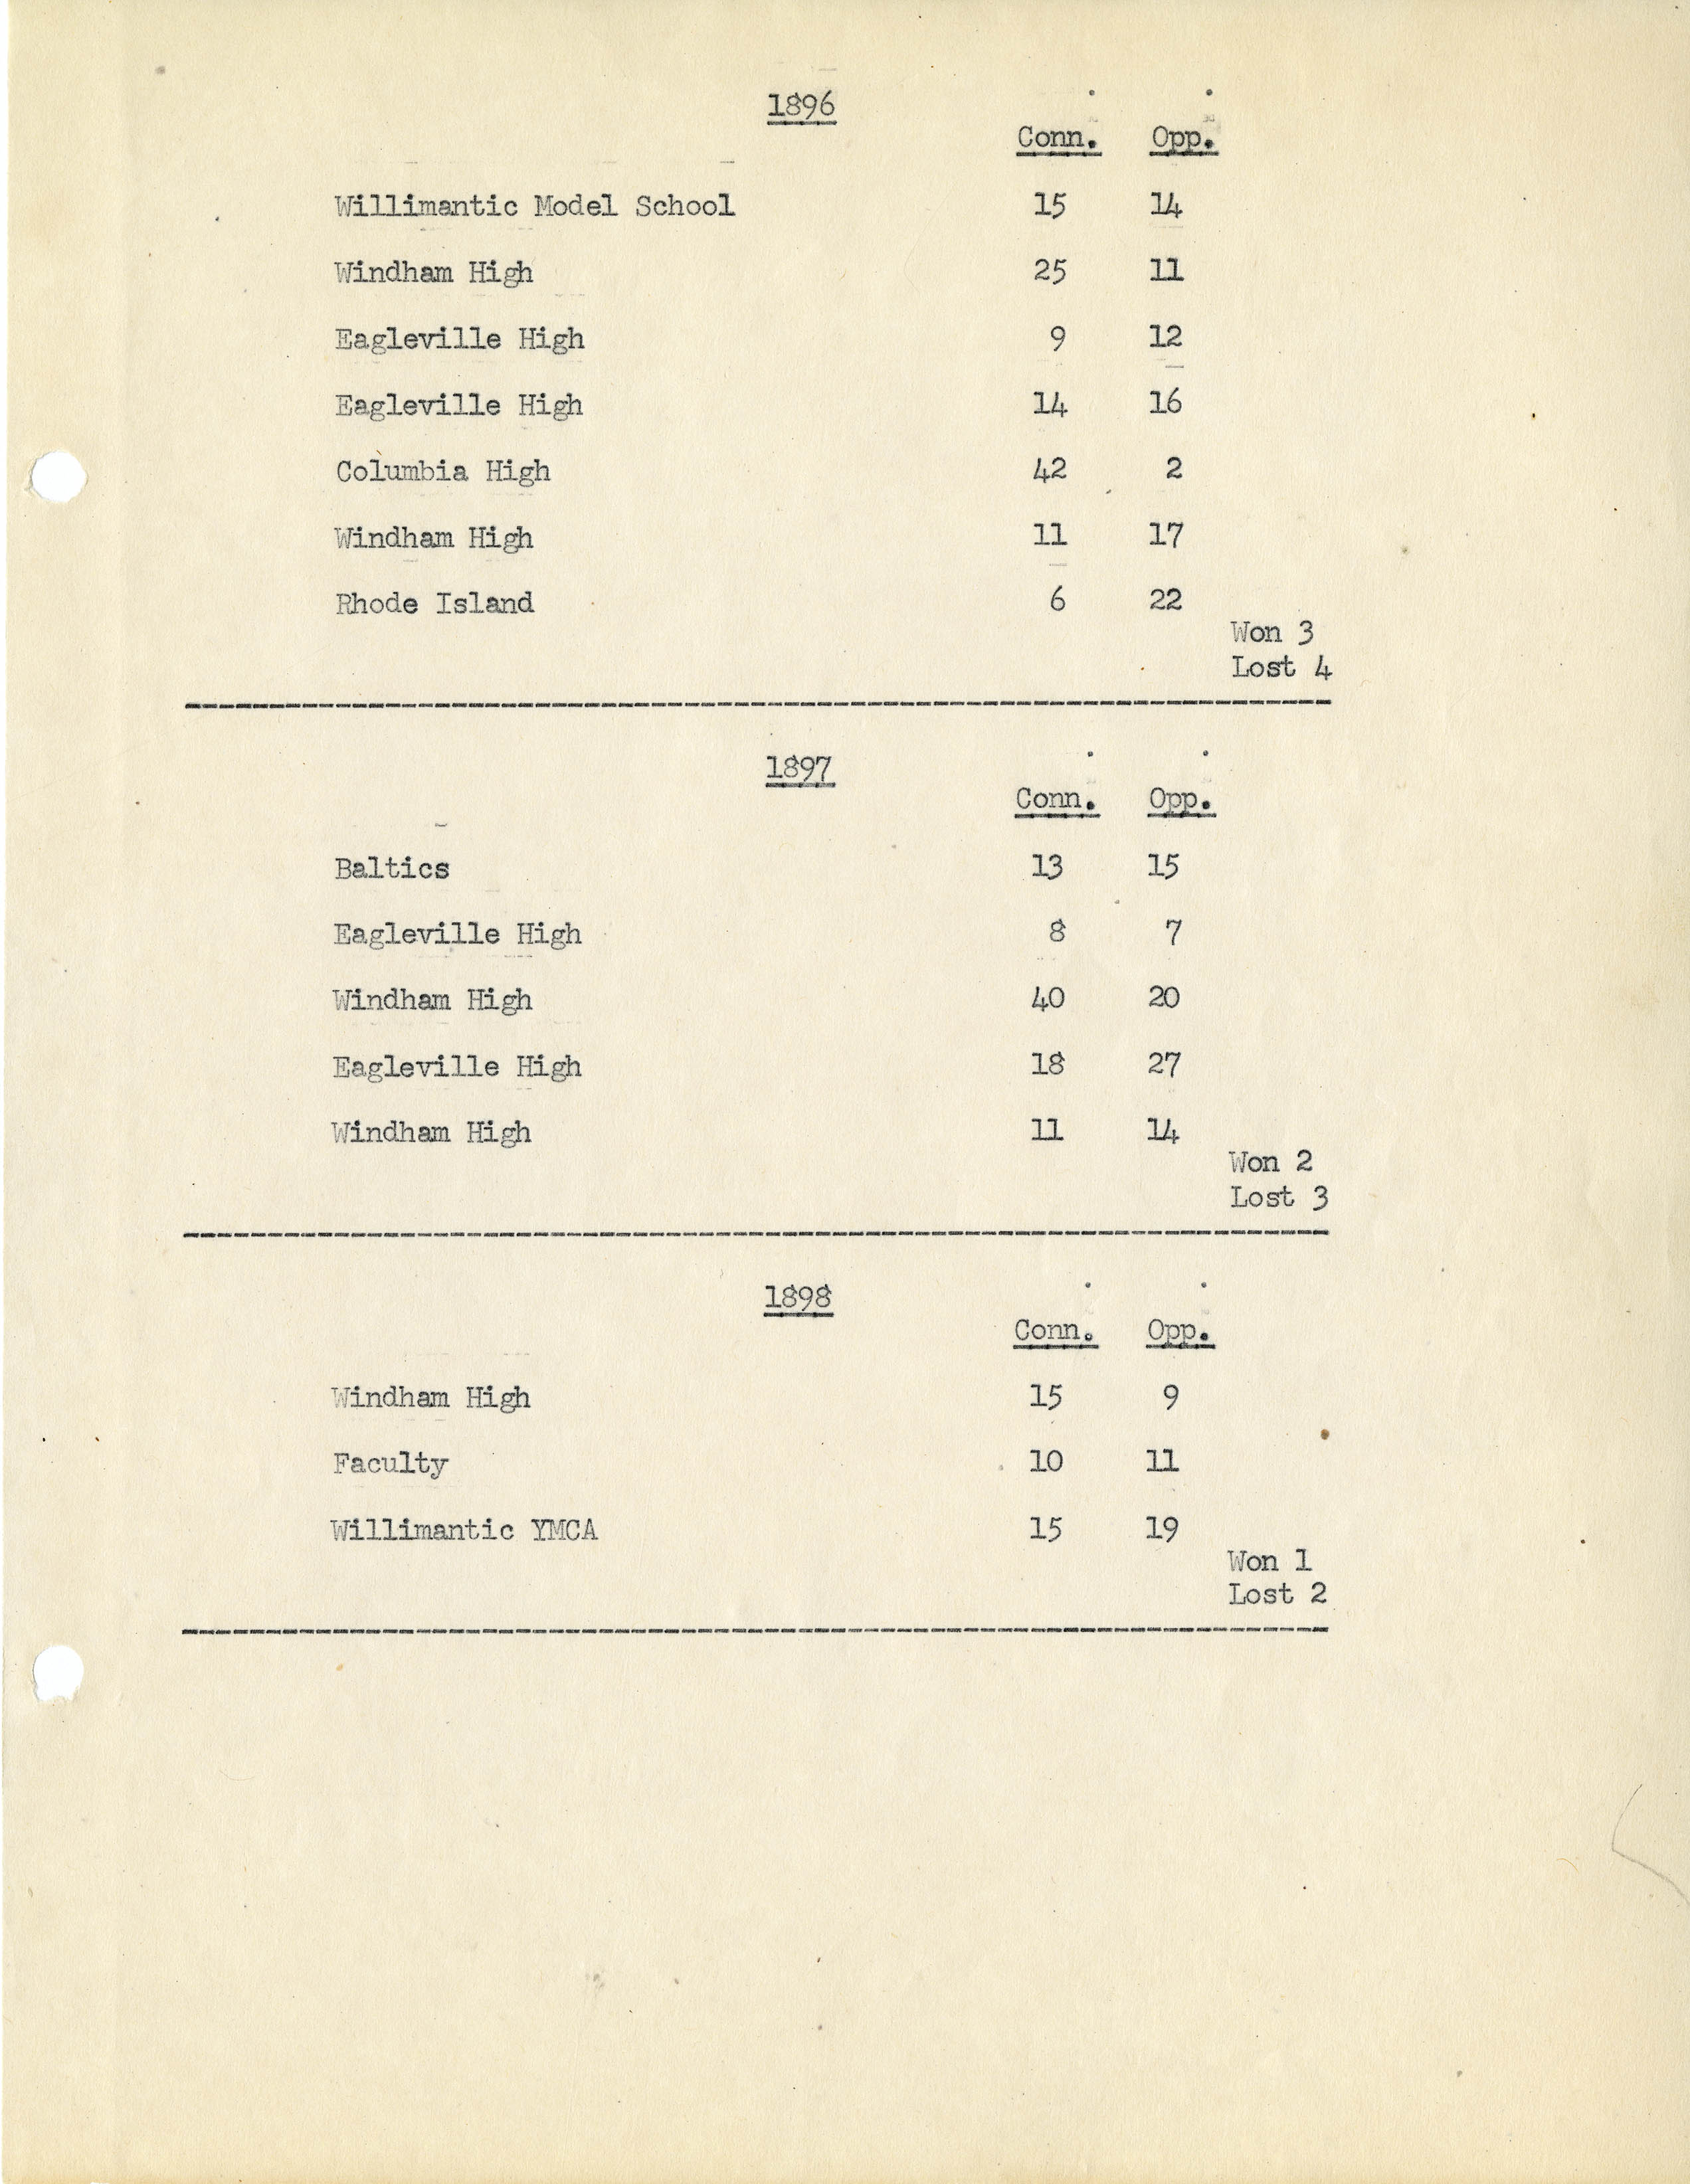 Baseball scores from the 1890s